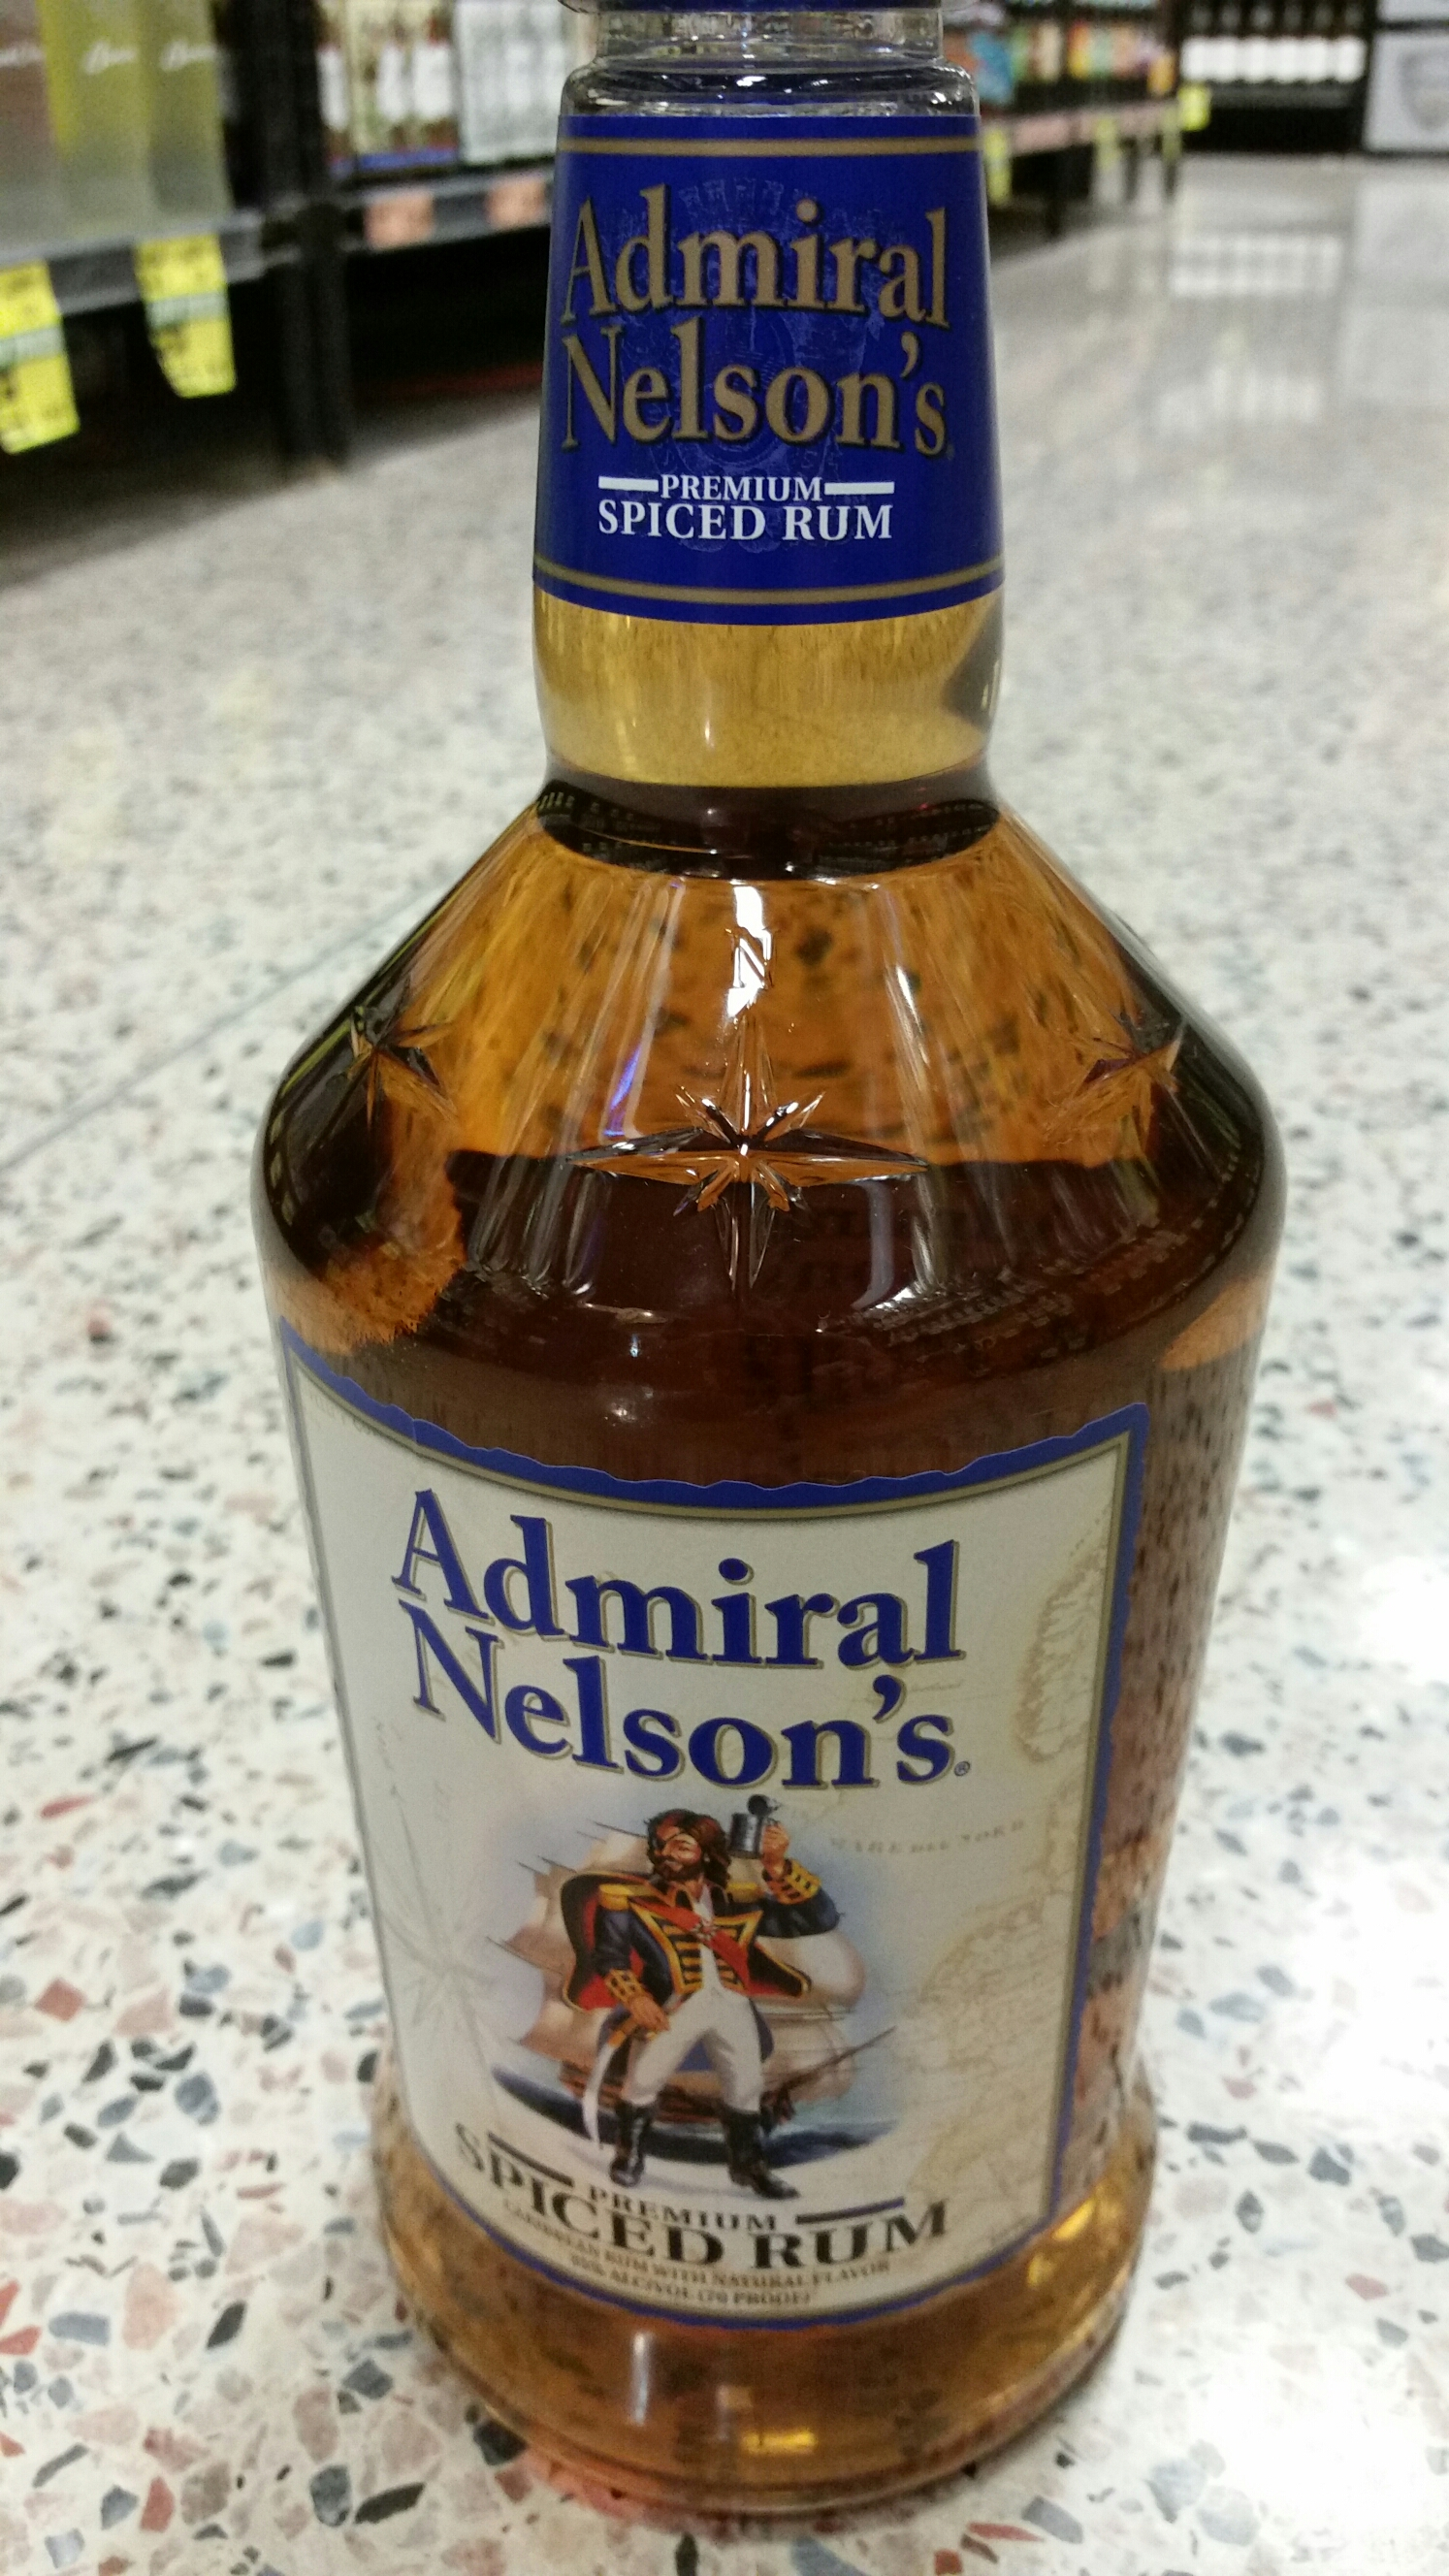 Ship Physician William Beatty Faced Some Criticism For Choosing To Put The Admirals Body In Brandy